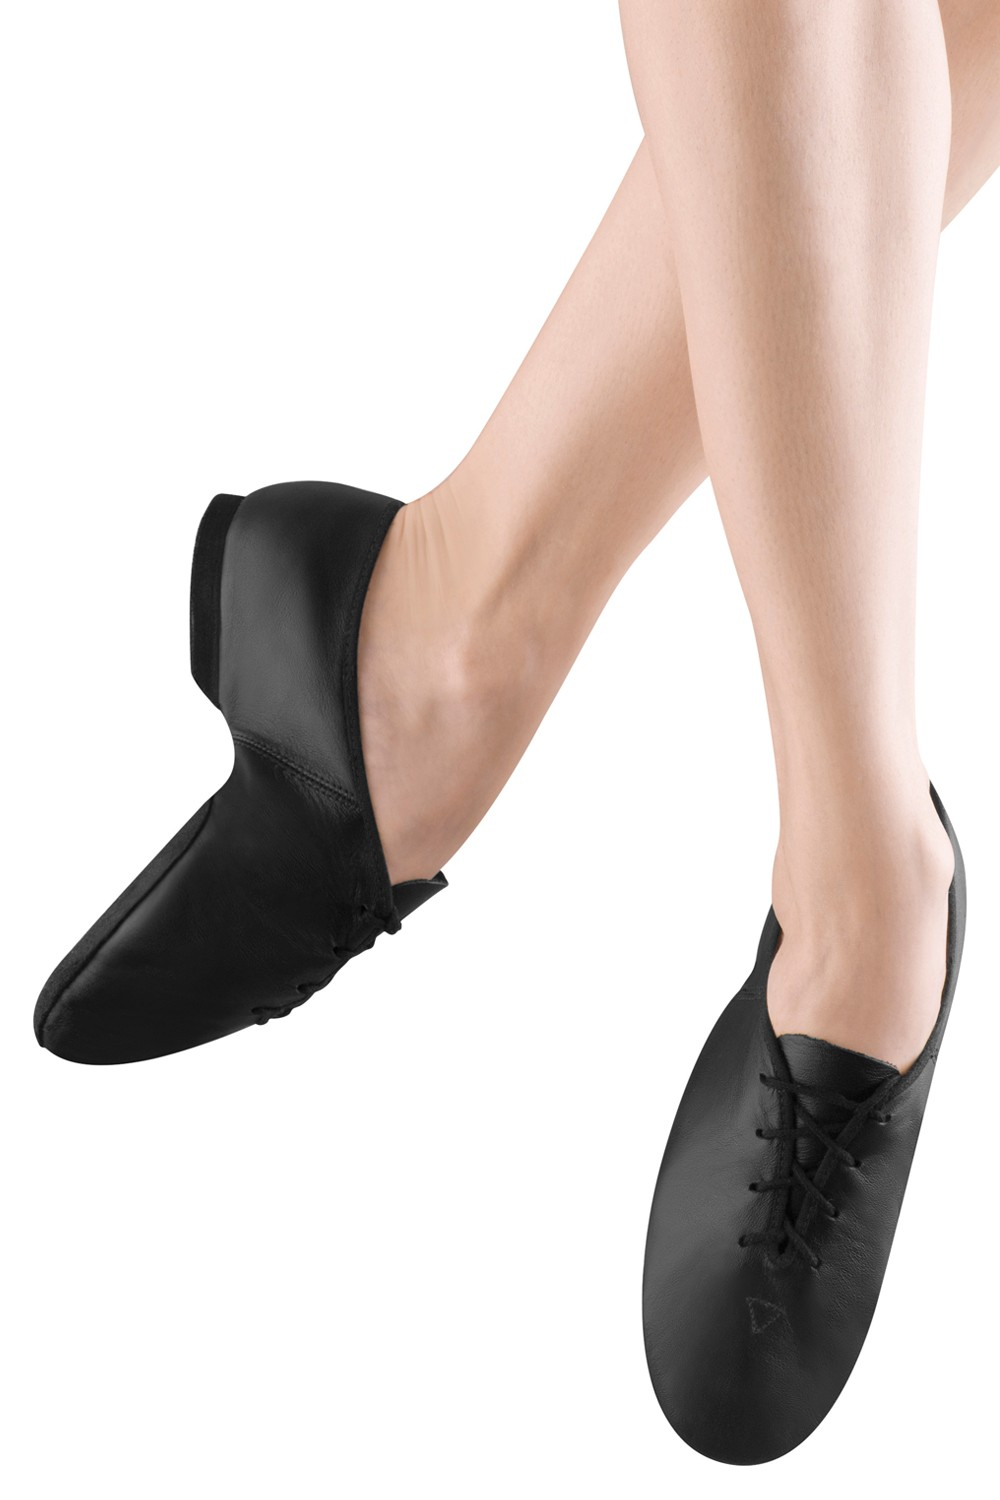 Premiers Chaussons De Jazz, Semelle En Daim Women's Jazz Shoes